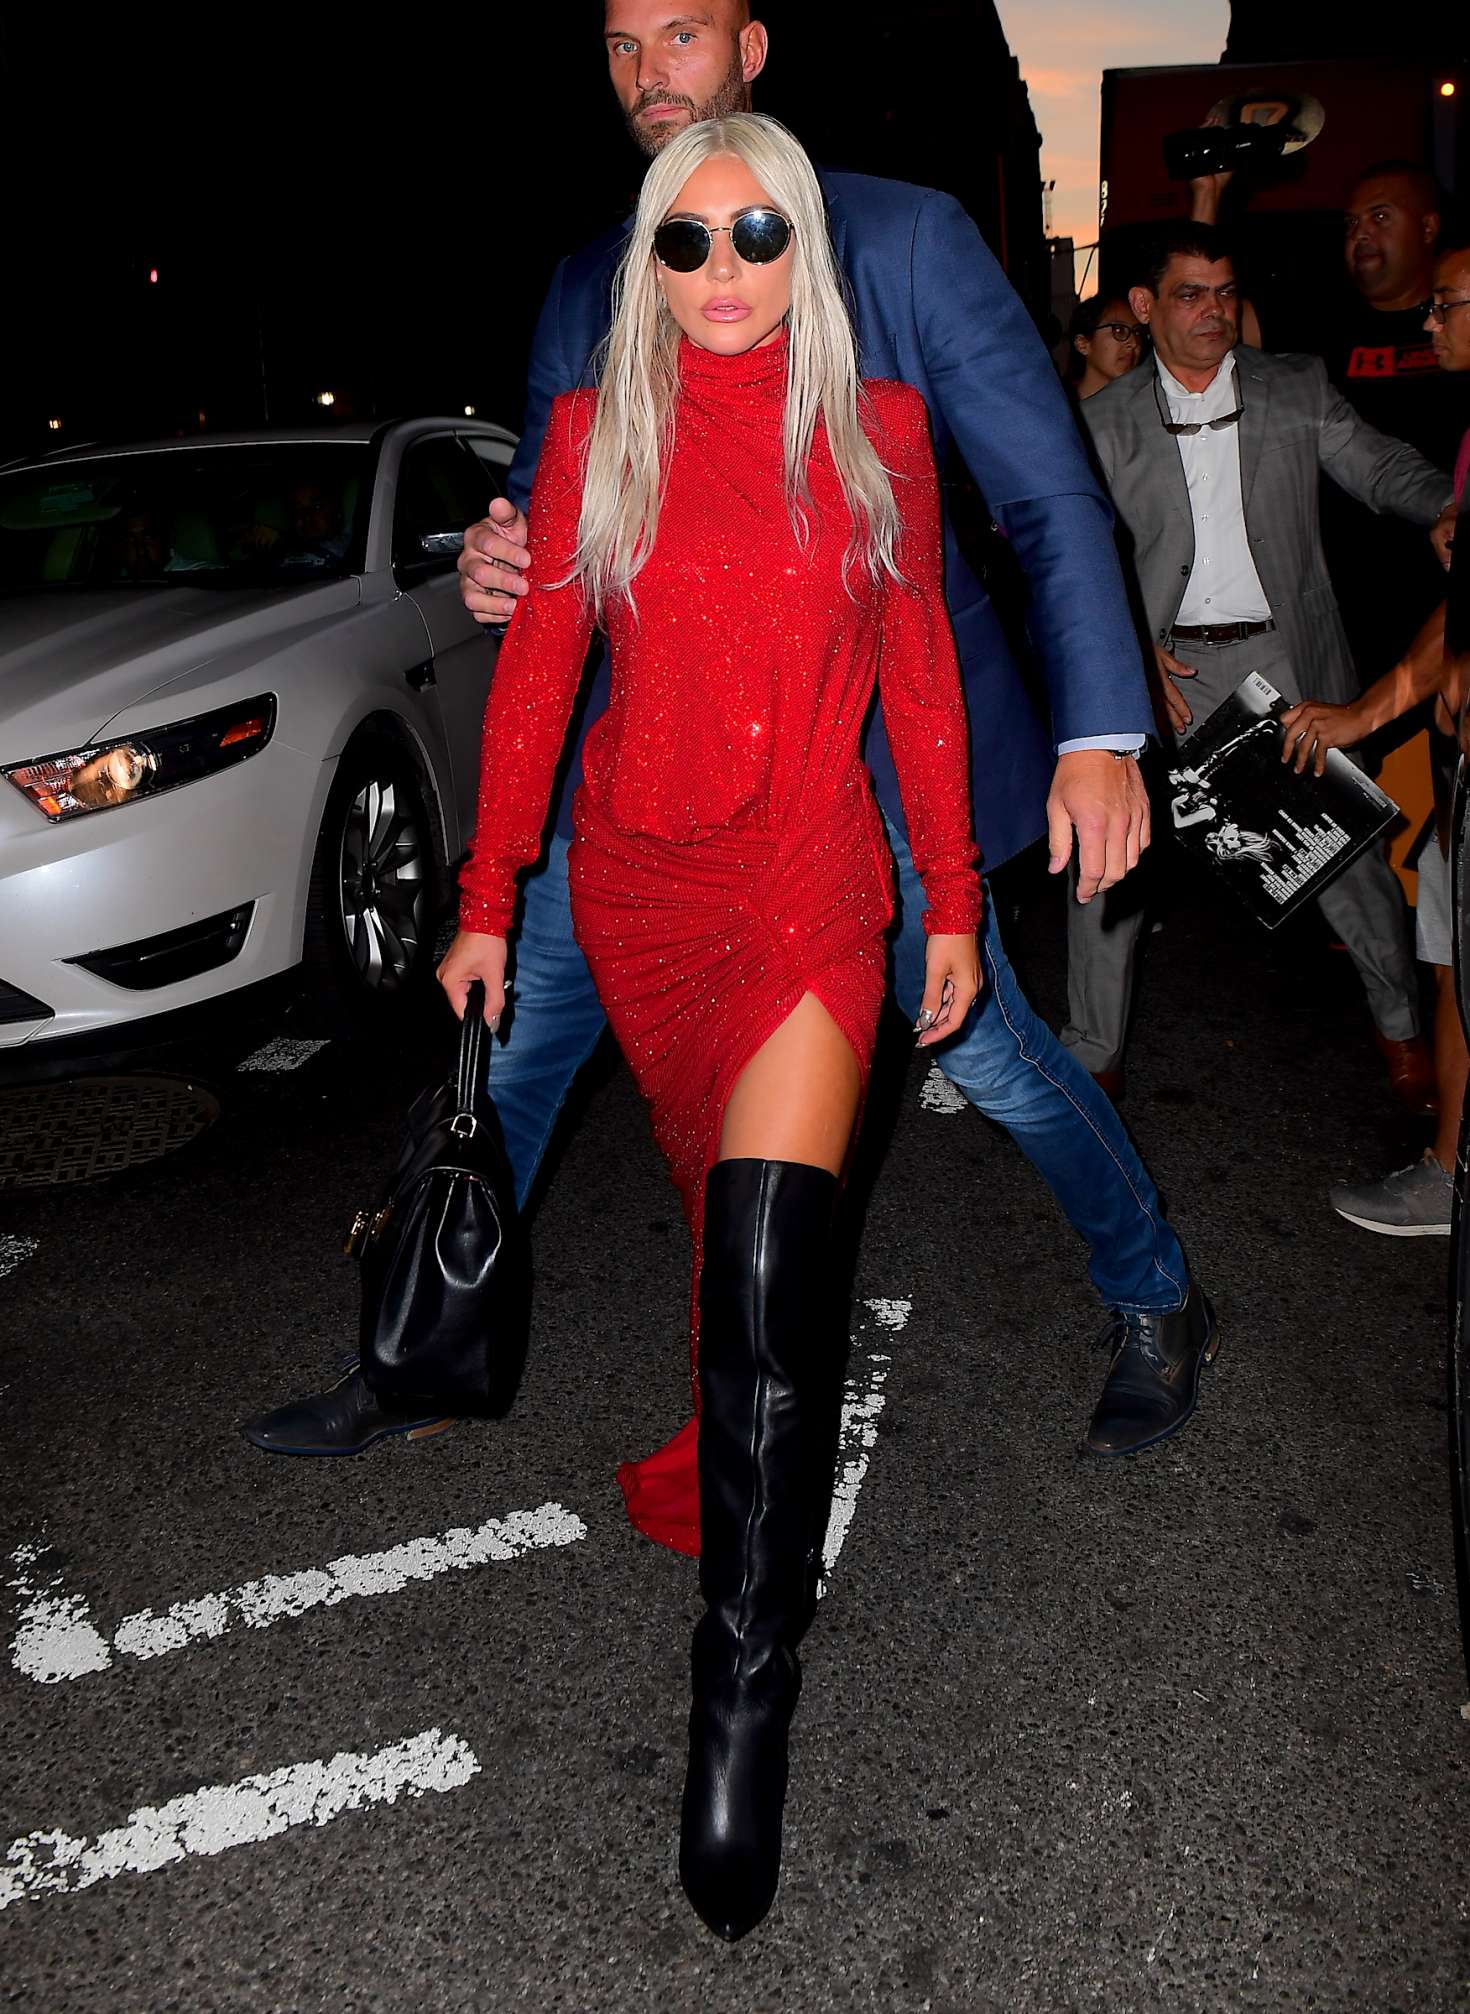 Lady Gaga In Red Dress Out In New York City Gotceleb